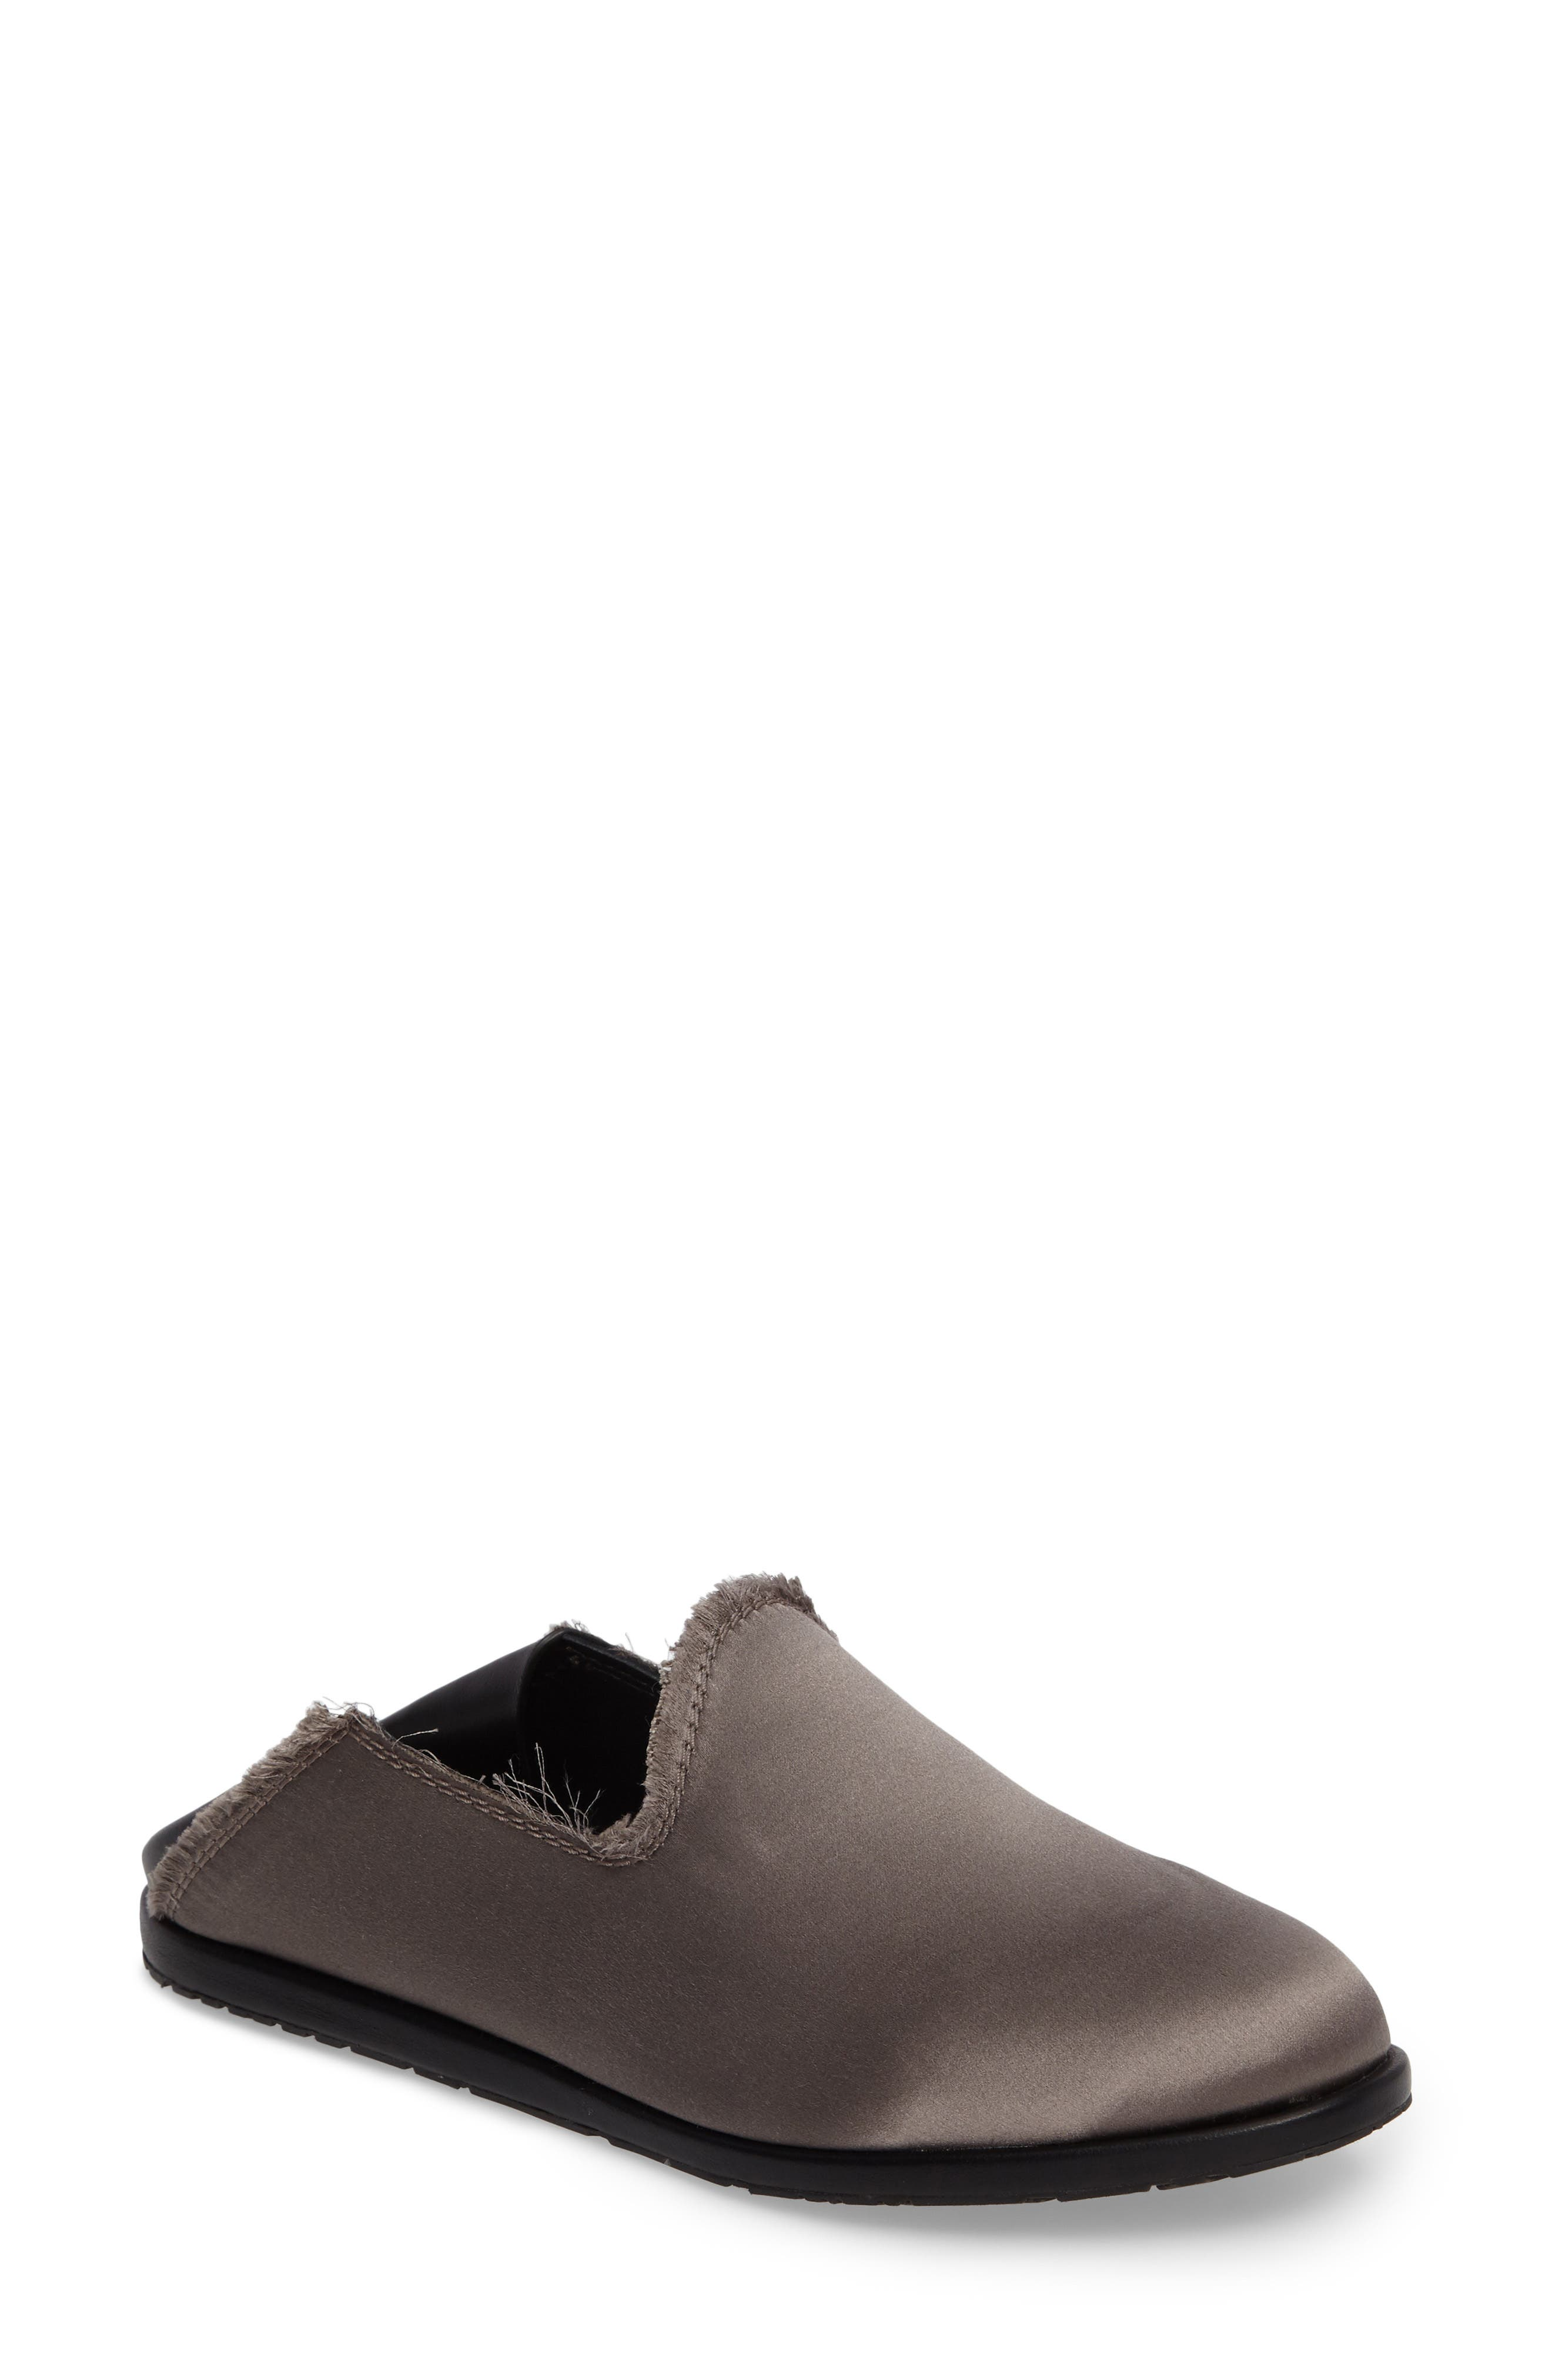 Yamir Convertible Loafer,                         Main,                         color, 020